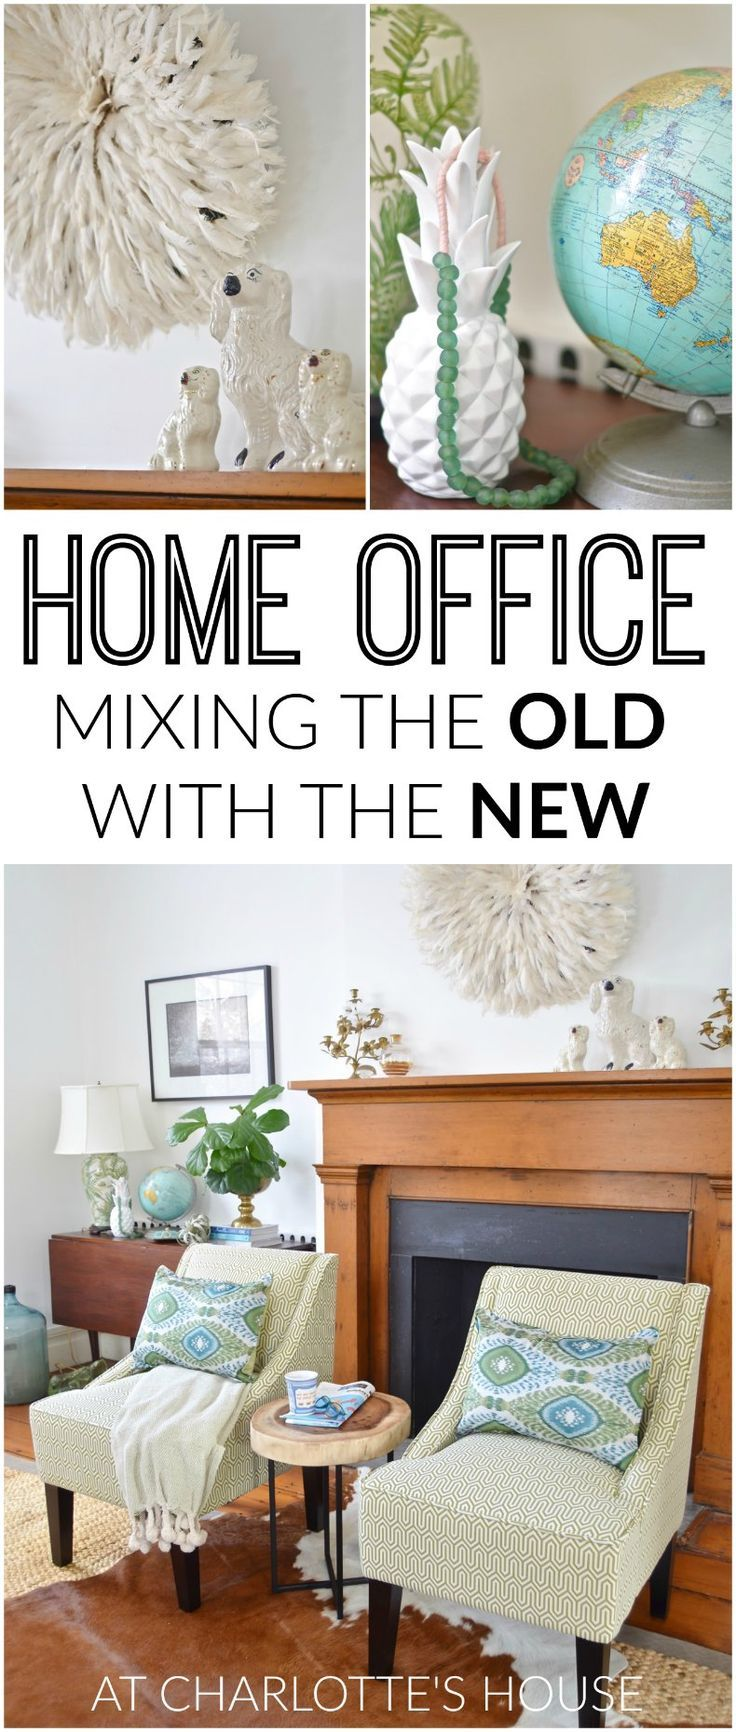 Good Mixing The Old With The New In Our Home Office! #ad #KohlsHome And